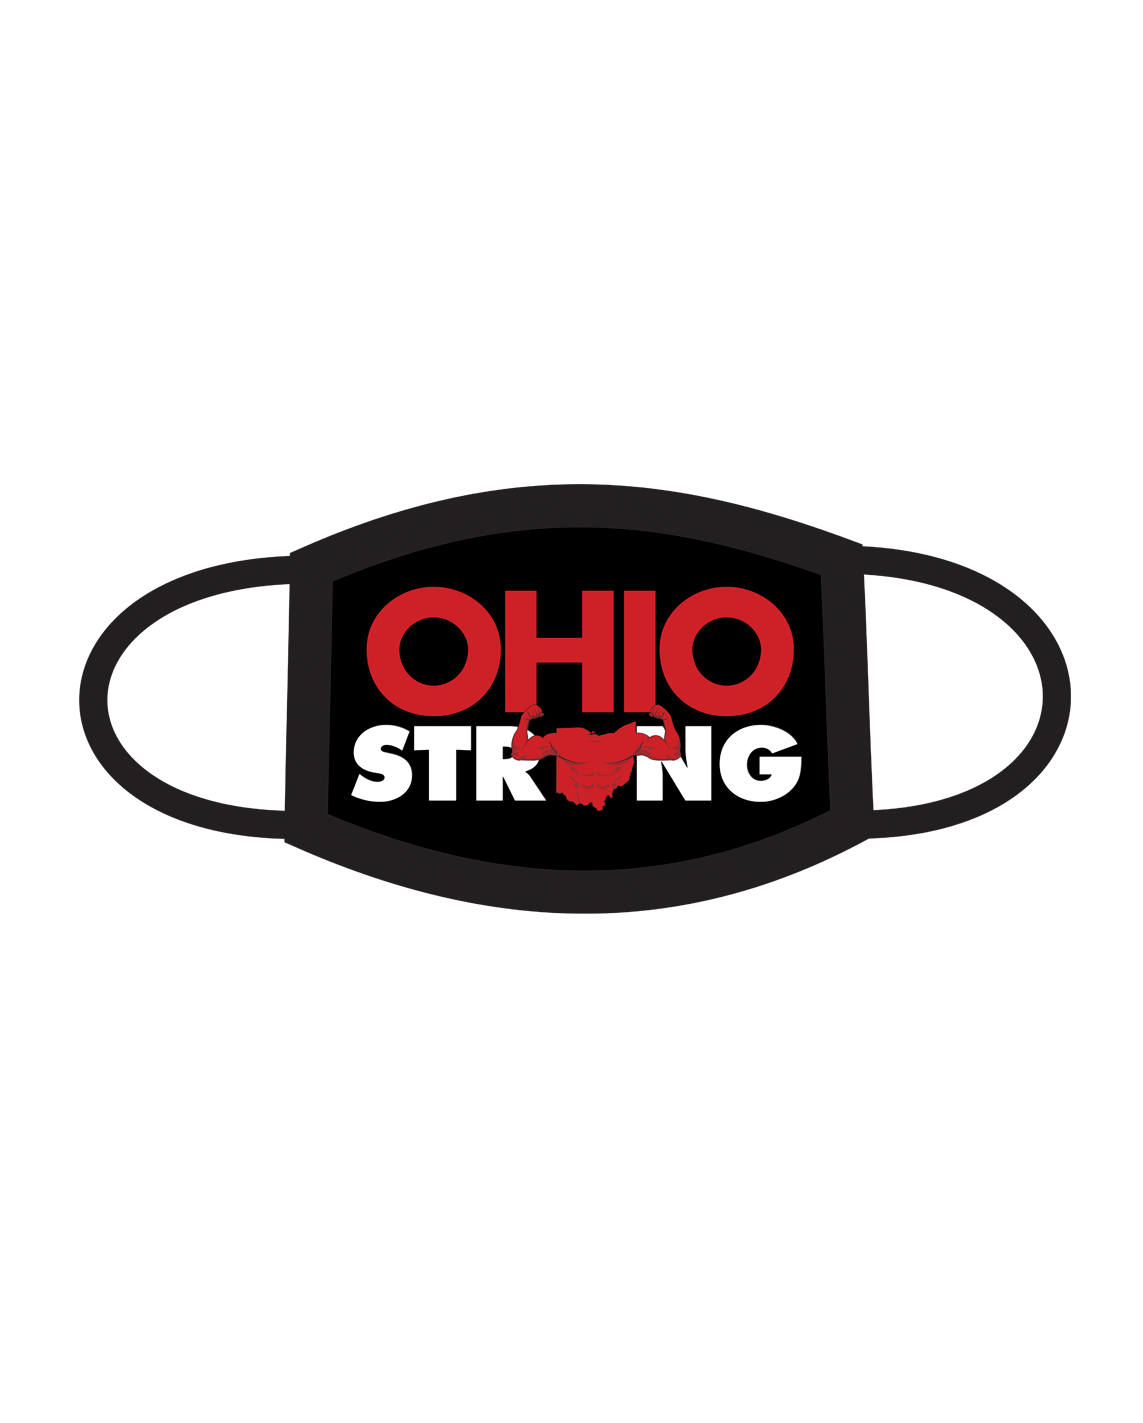 Ohio Strong Face Mask